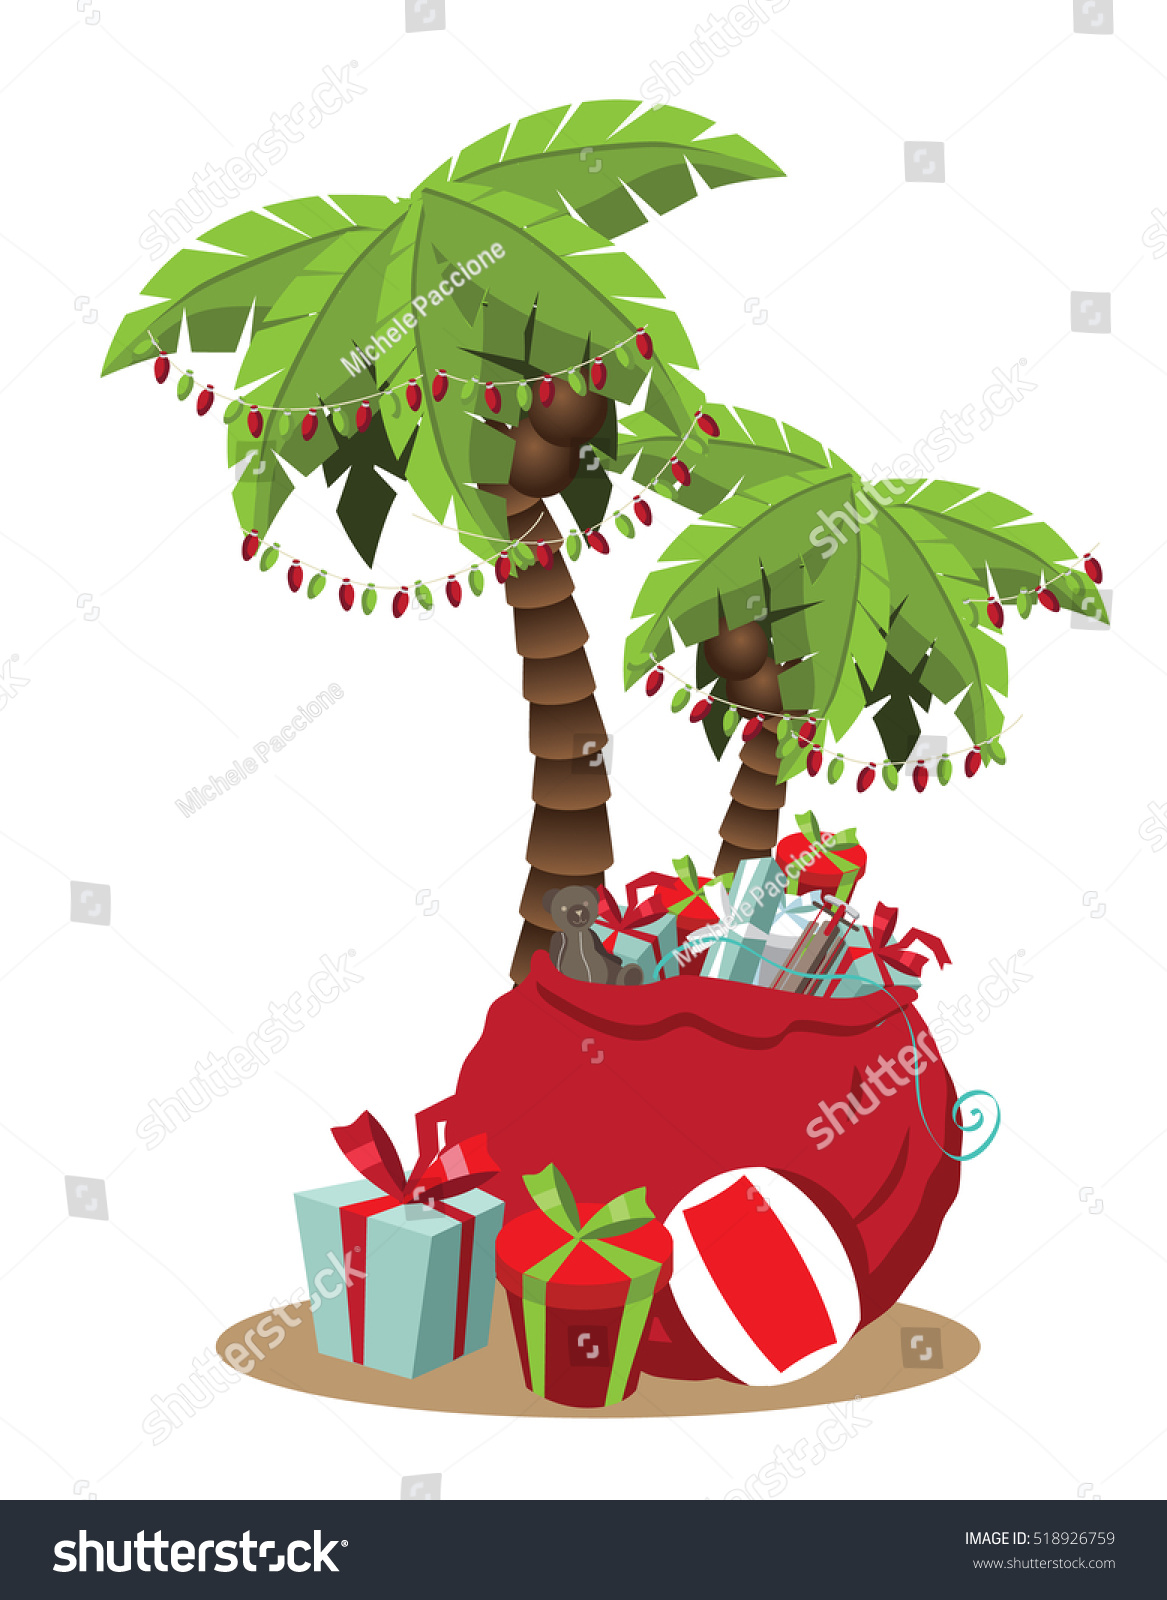 Christmas palm tree clipart 7 » Clipart Station.